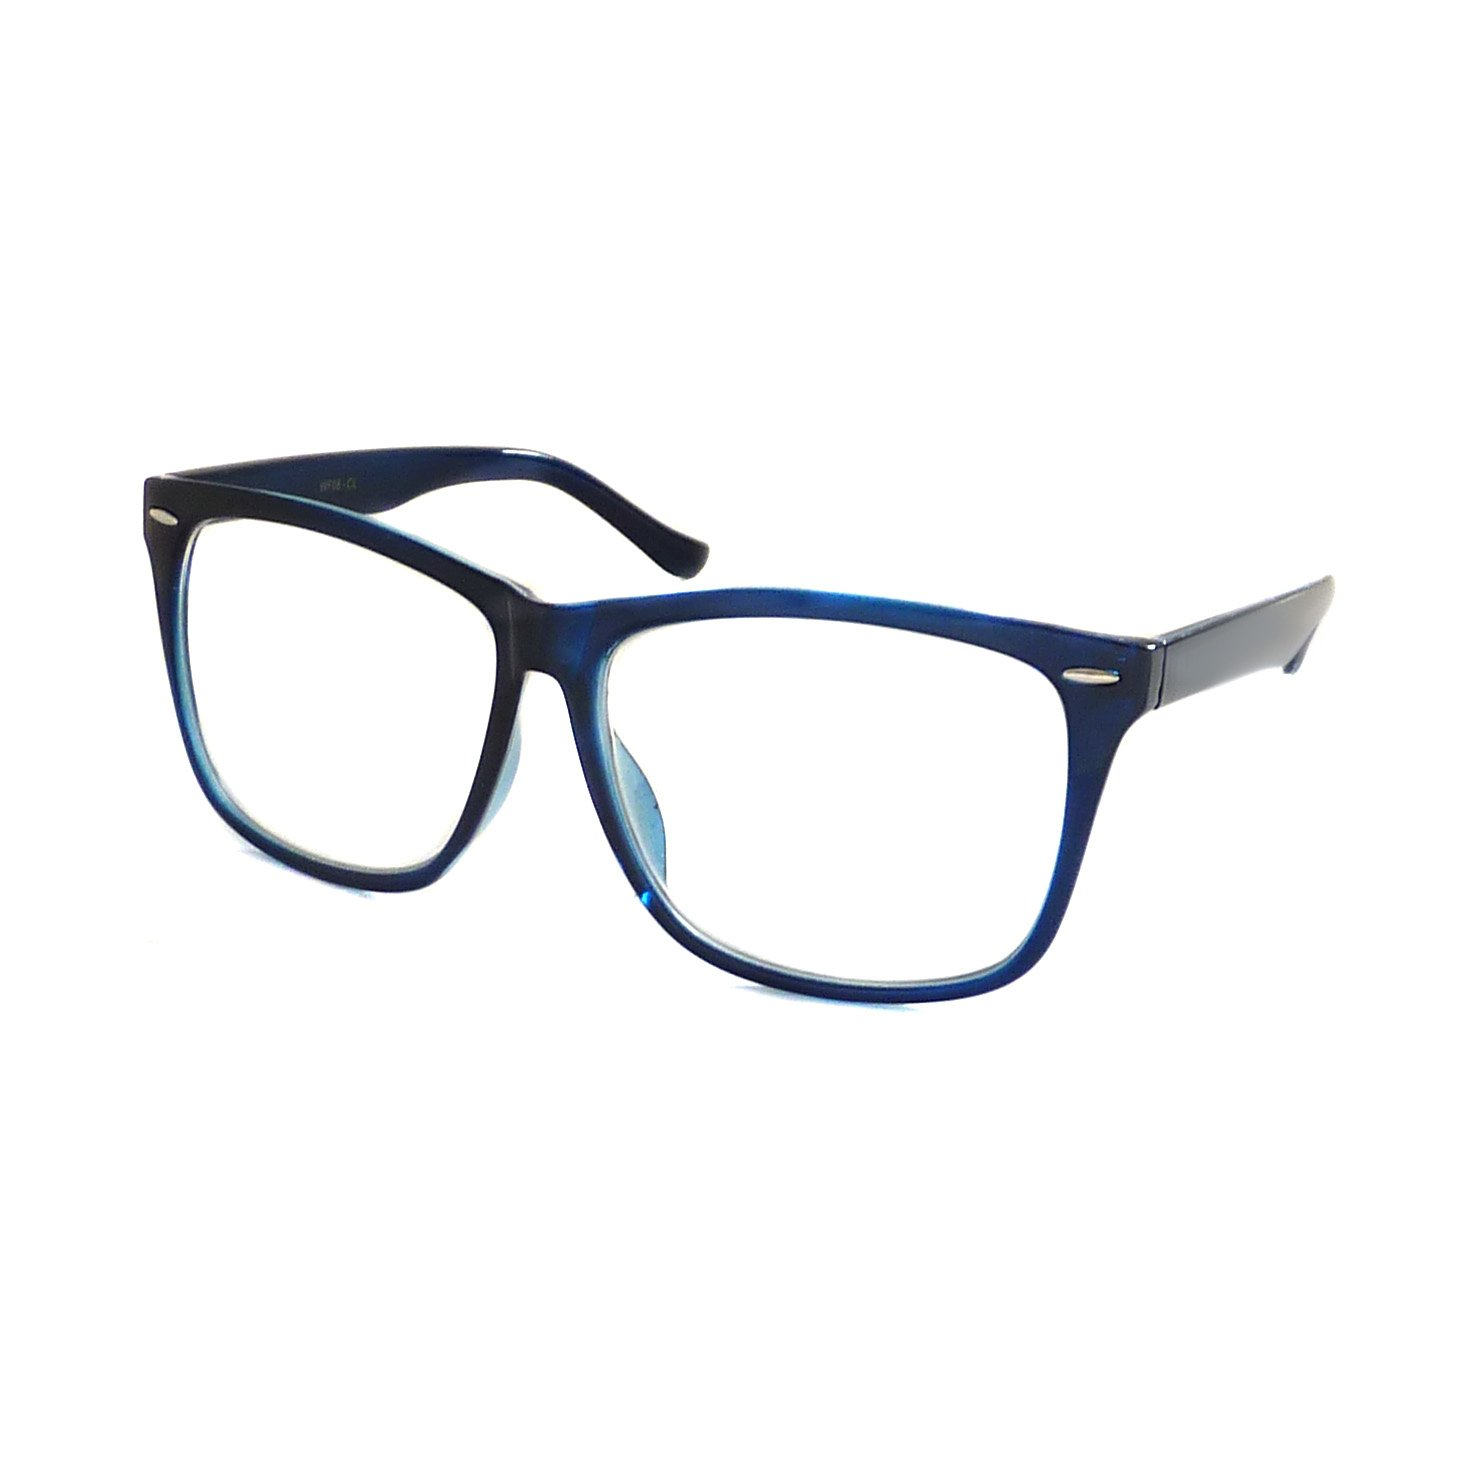 5939112707c Amazon.com  NERD Geek 50s Style Oversize Trendy Frame Unisex Clear Lens Eye  Glasses BLUE  Clothing